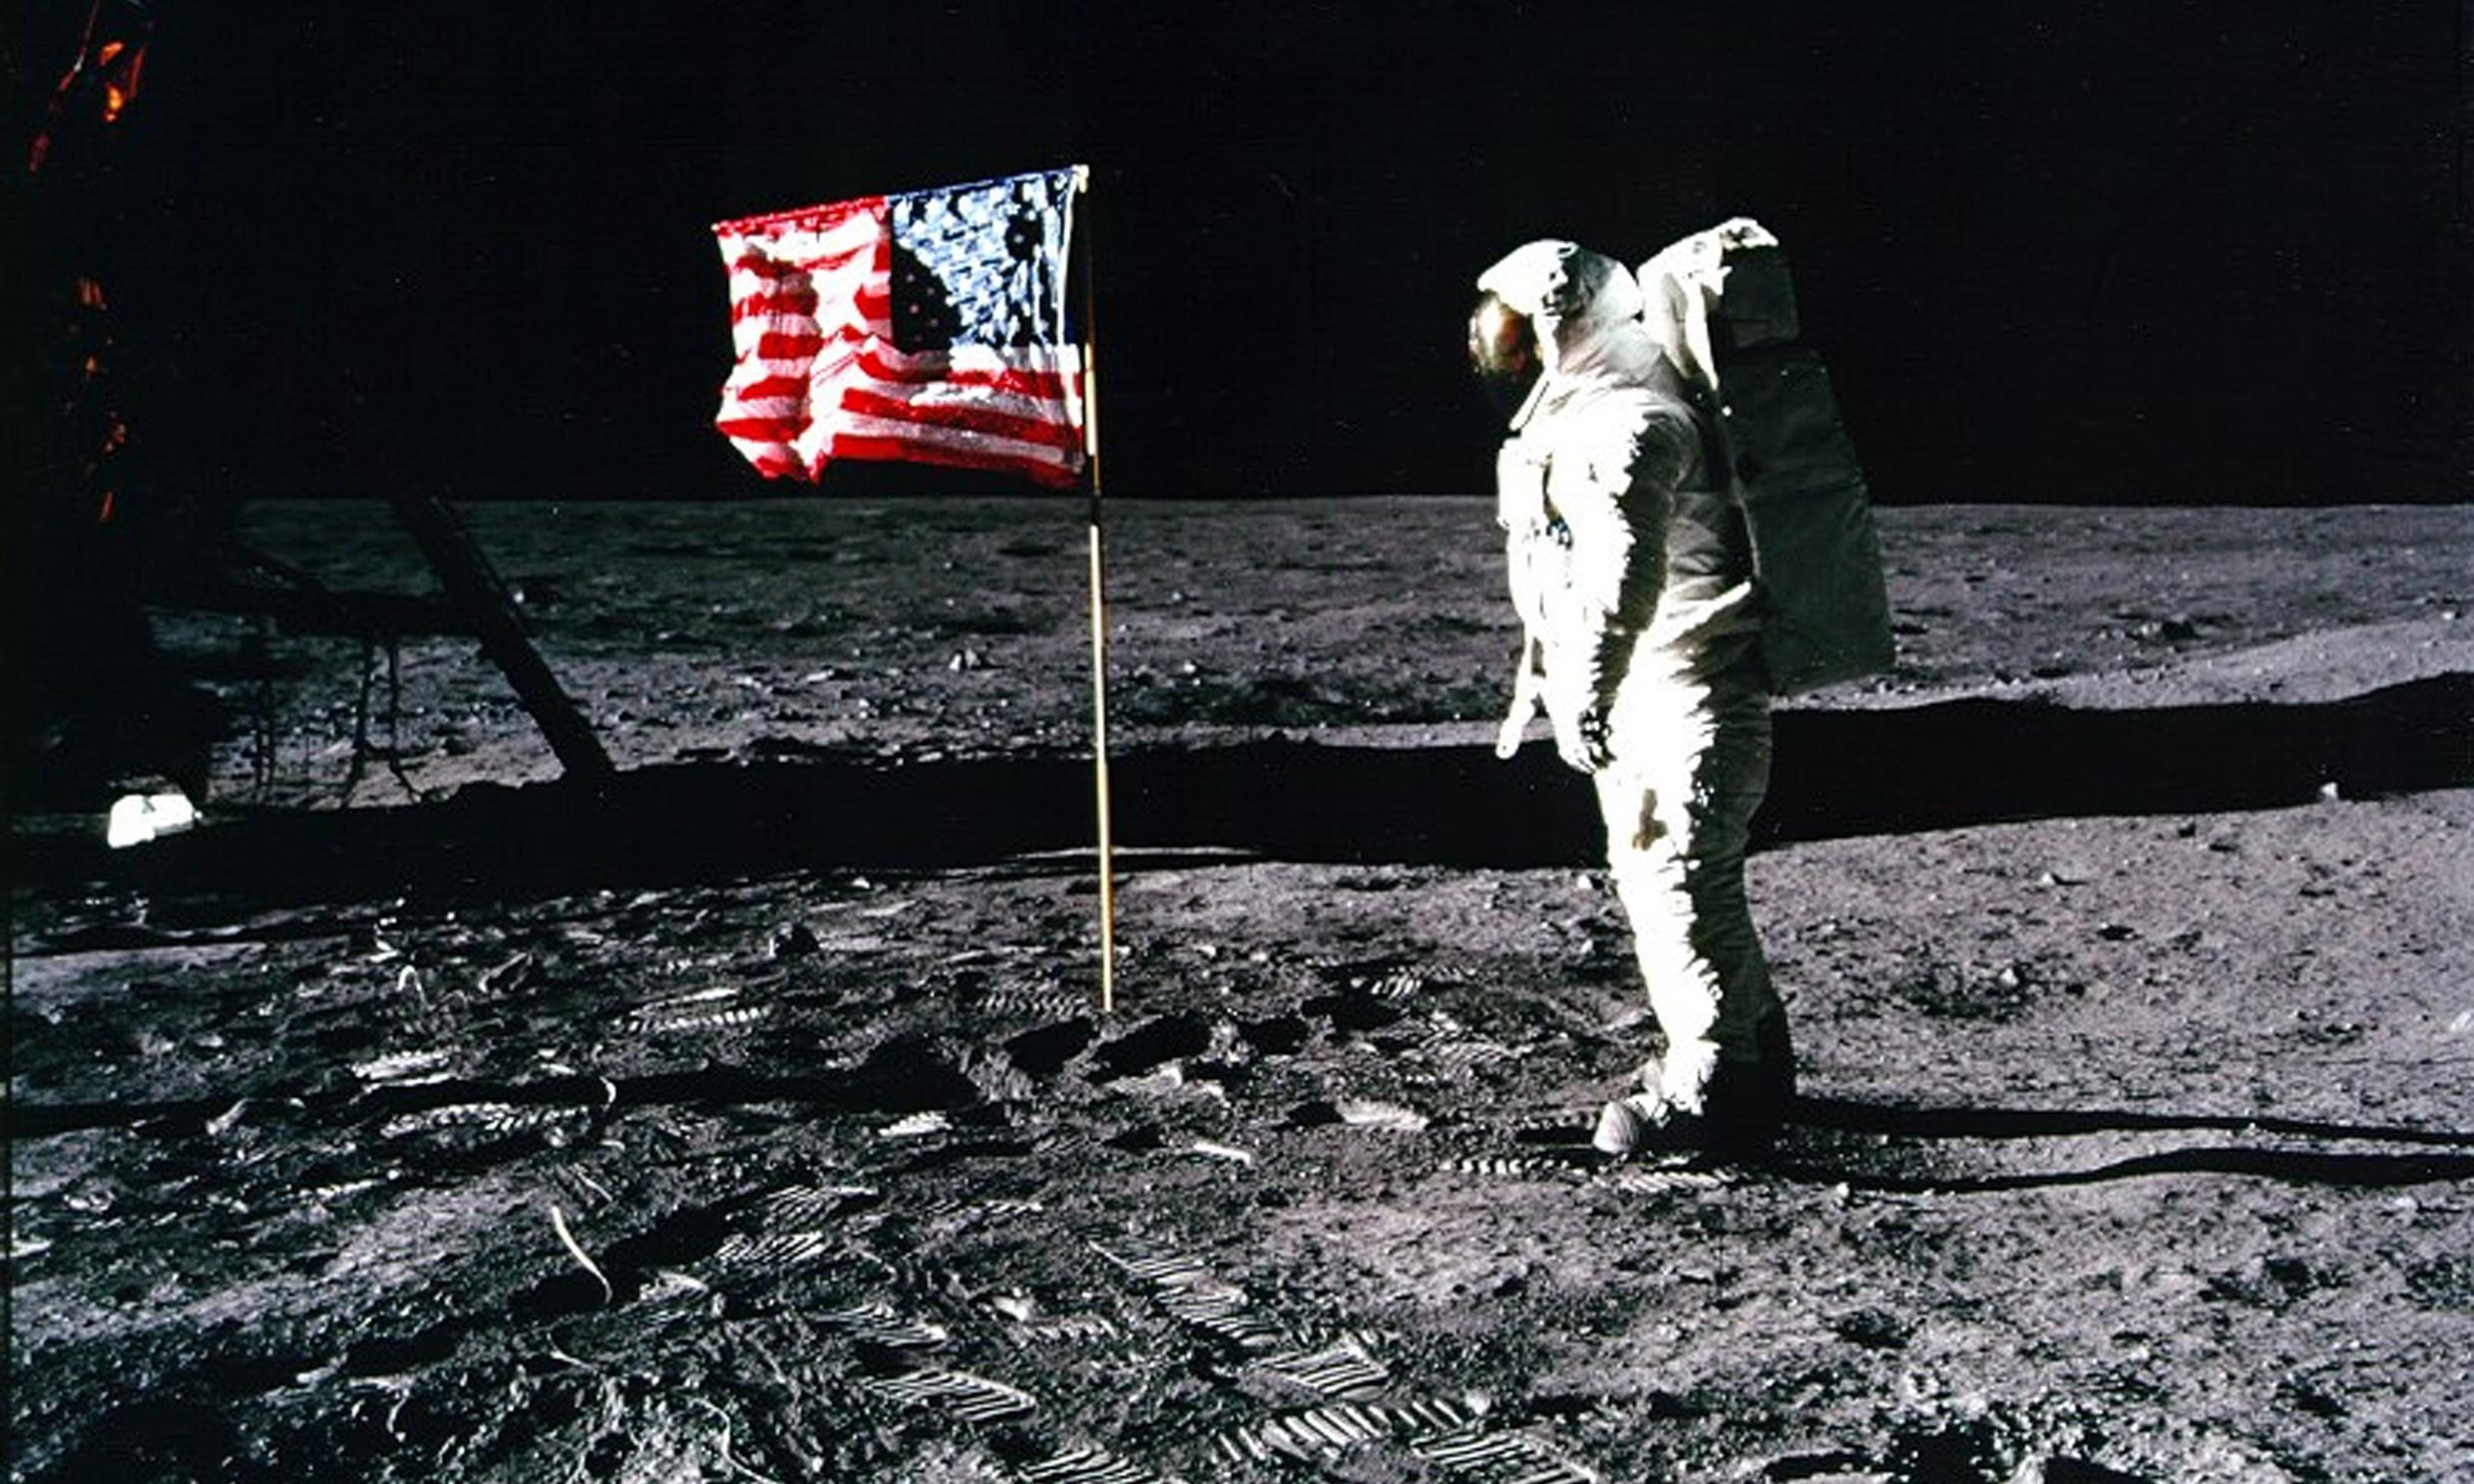 The Guardian view on moon landings: a new race for space